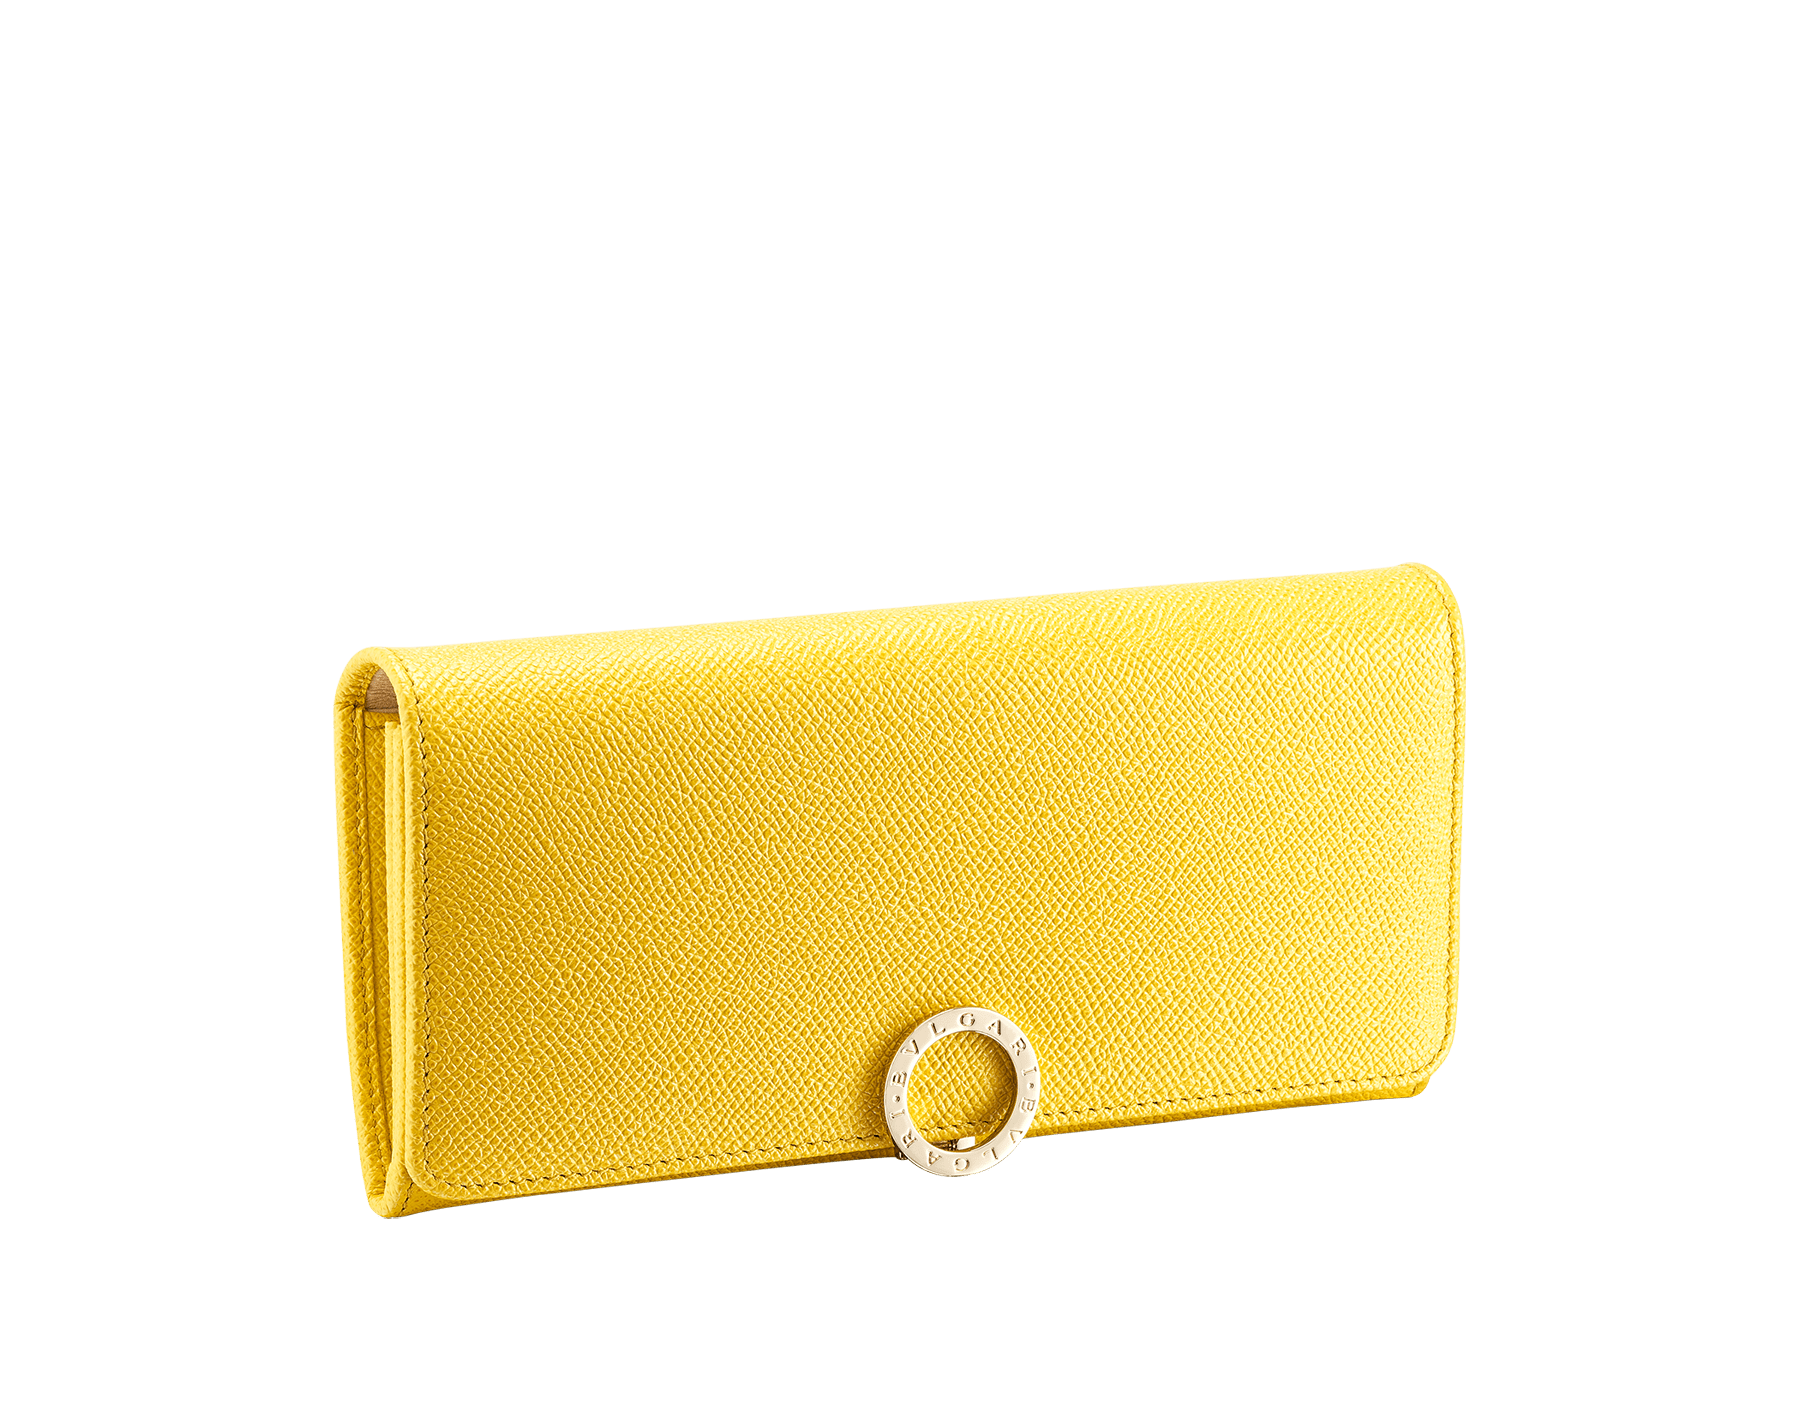 BVLGARI BVLGARI wallet pochette in daisy topaz grain calf leather and crystal rose nappa leather. Iconic logo clip closure in light gold plated brass. 289974 image 1